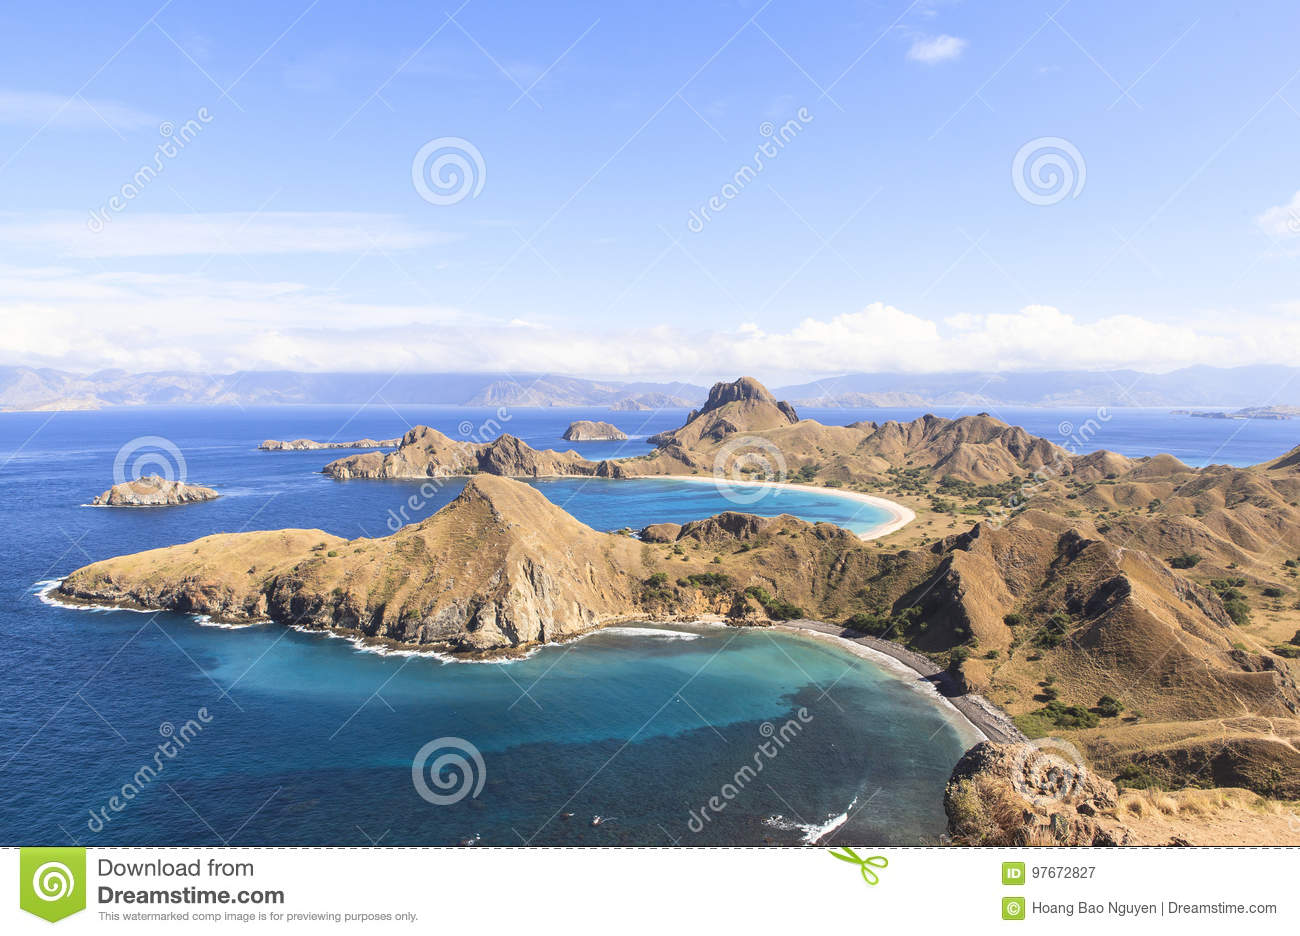 PADAR-INSEL, Nationalpark Komodo, Indonesien